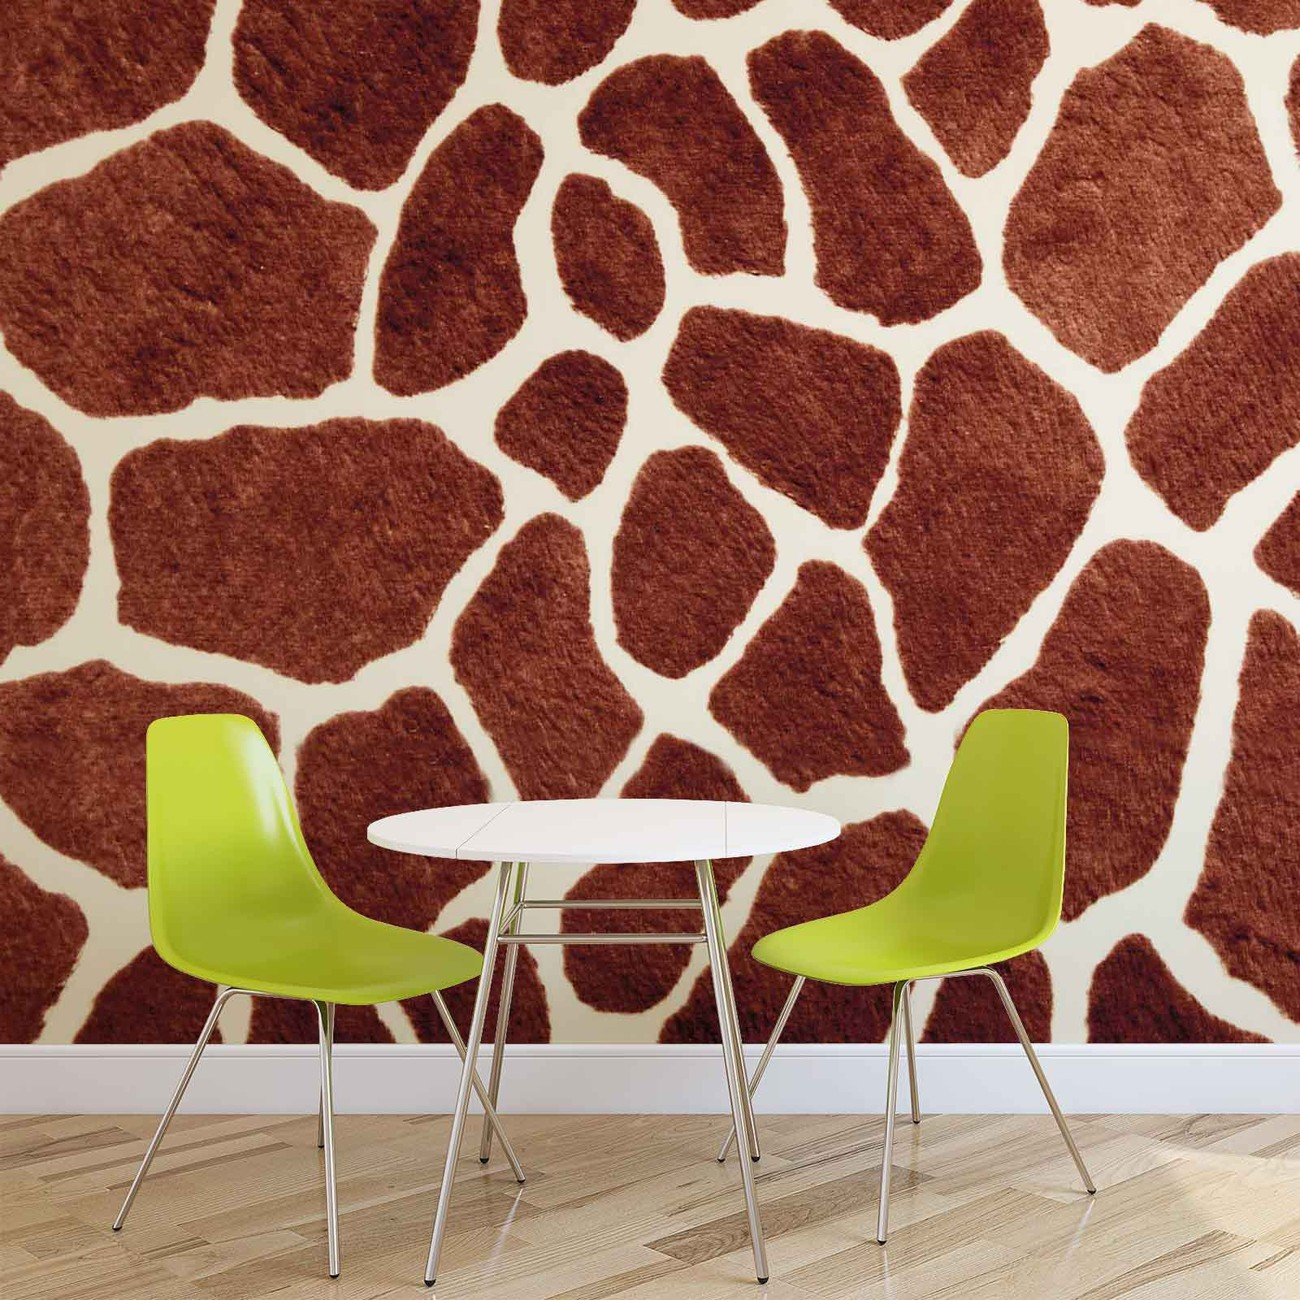 giraffe abstract wall paper mural buy at europosters